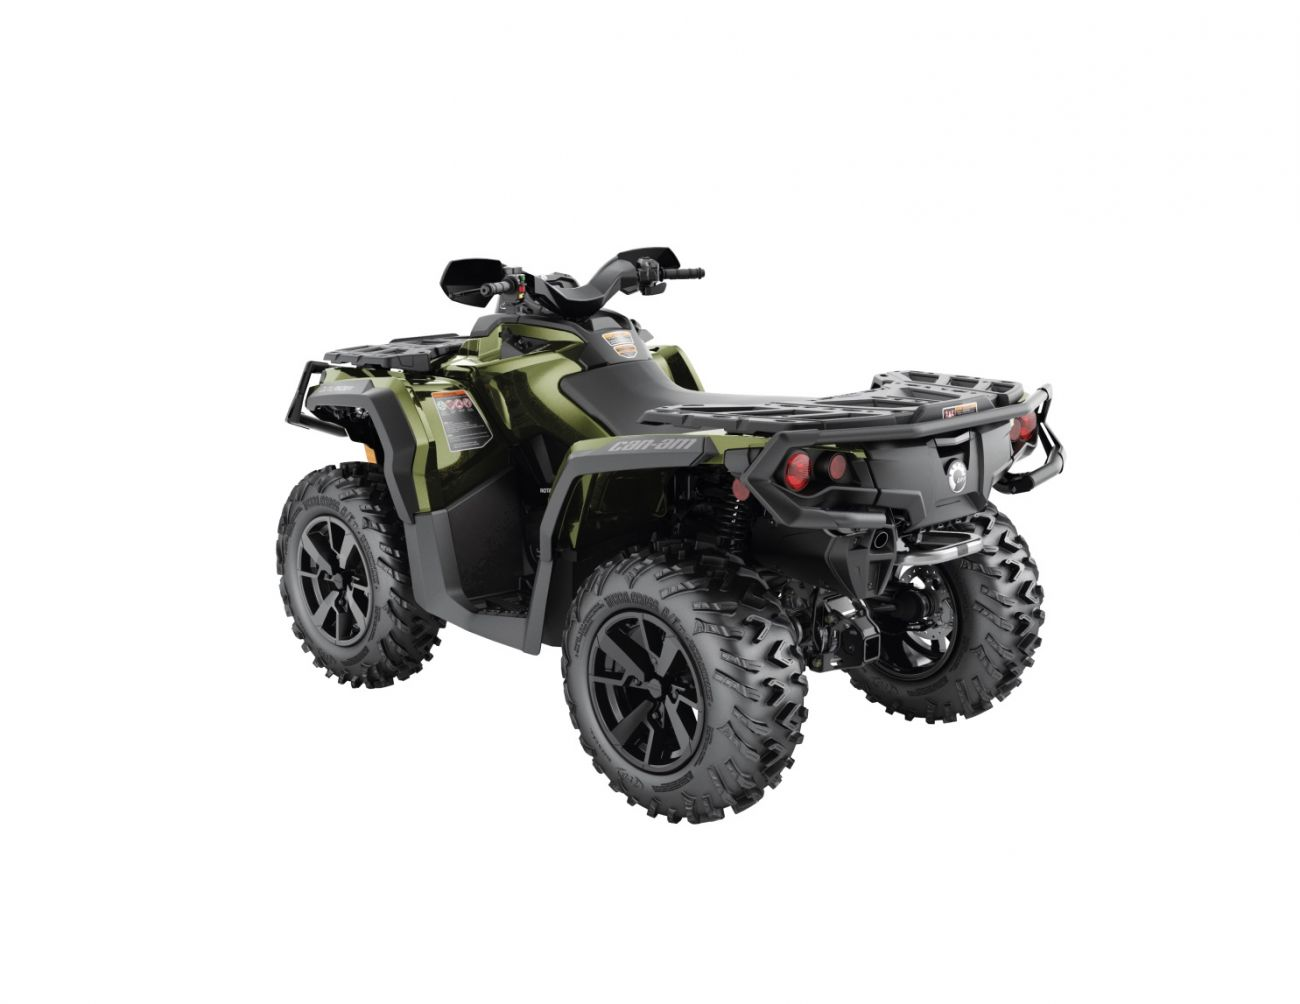 POWERSPORTS CANAM ORV_IMAGERY OUTLANDER MY21 ORV_ATV_MY21_OUT_XT_1000R_Bore_120720105416_lowres